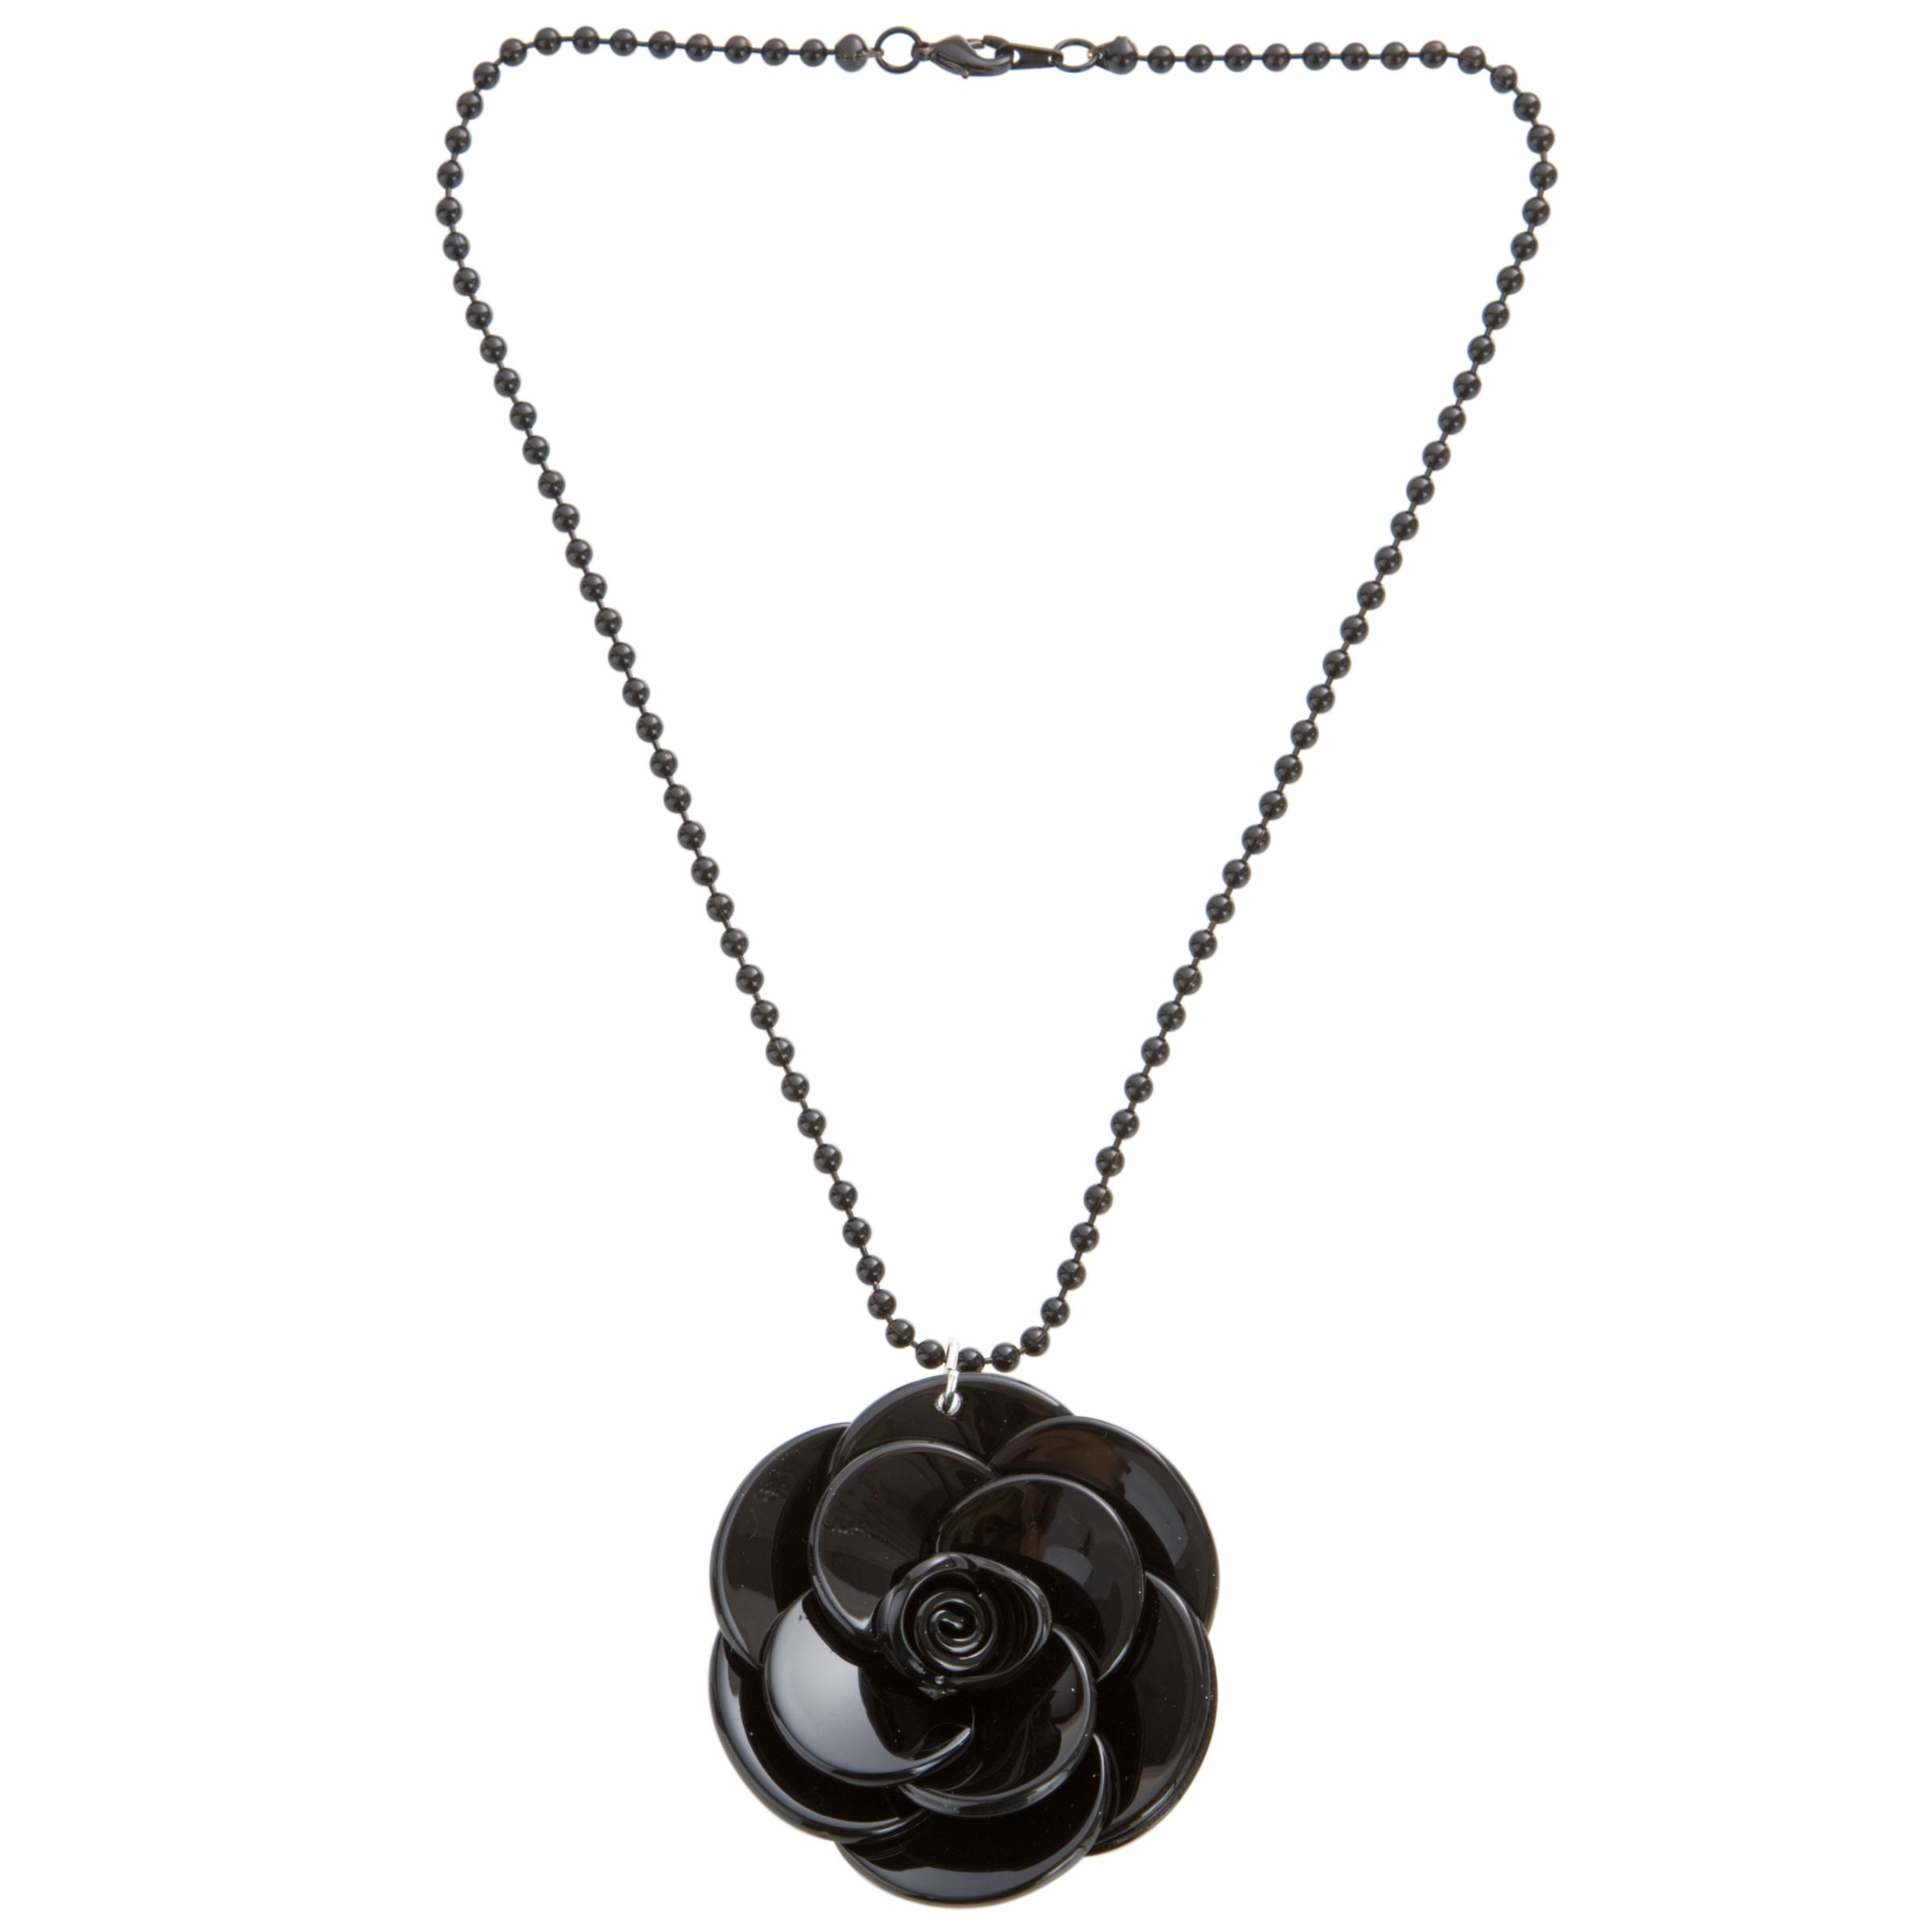 Big Baby Large Rosette Black Flower Pendant Necklace